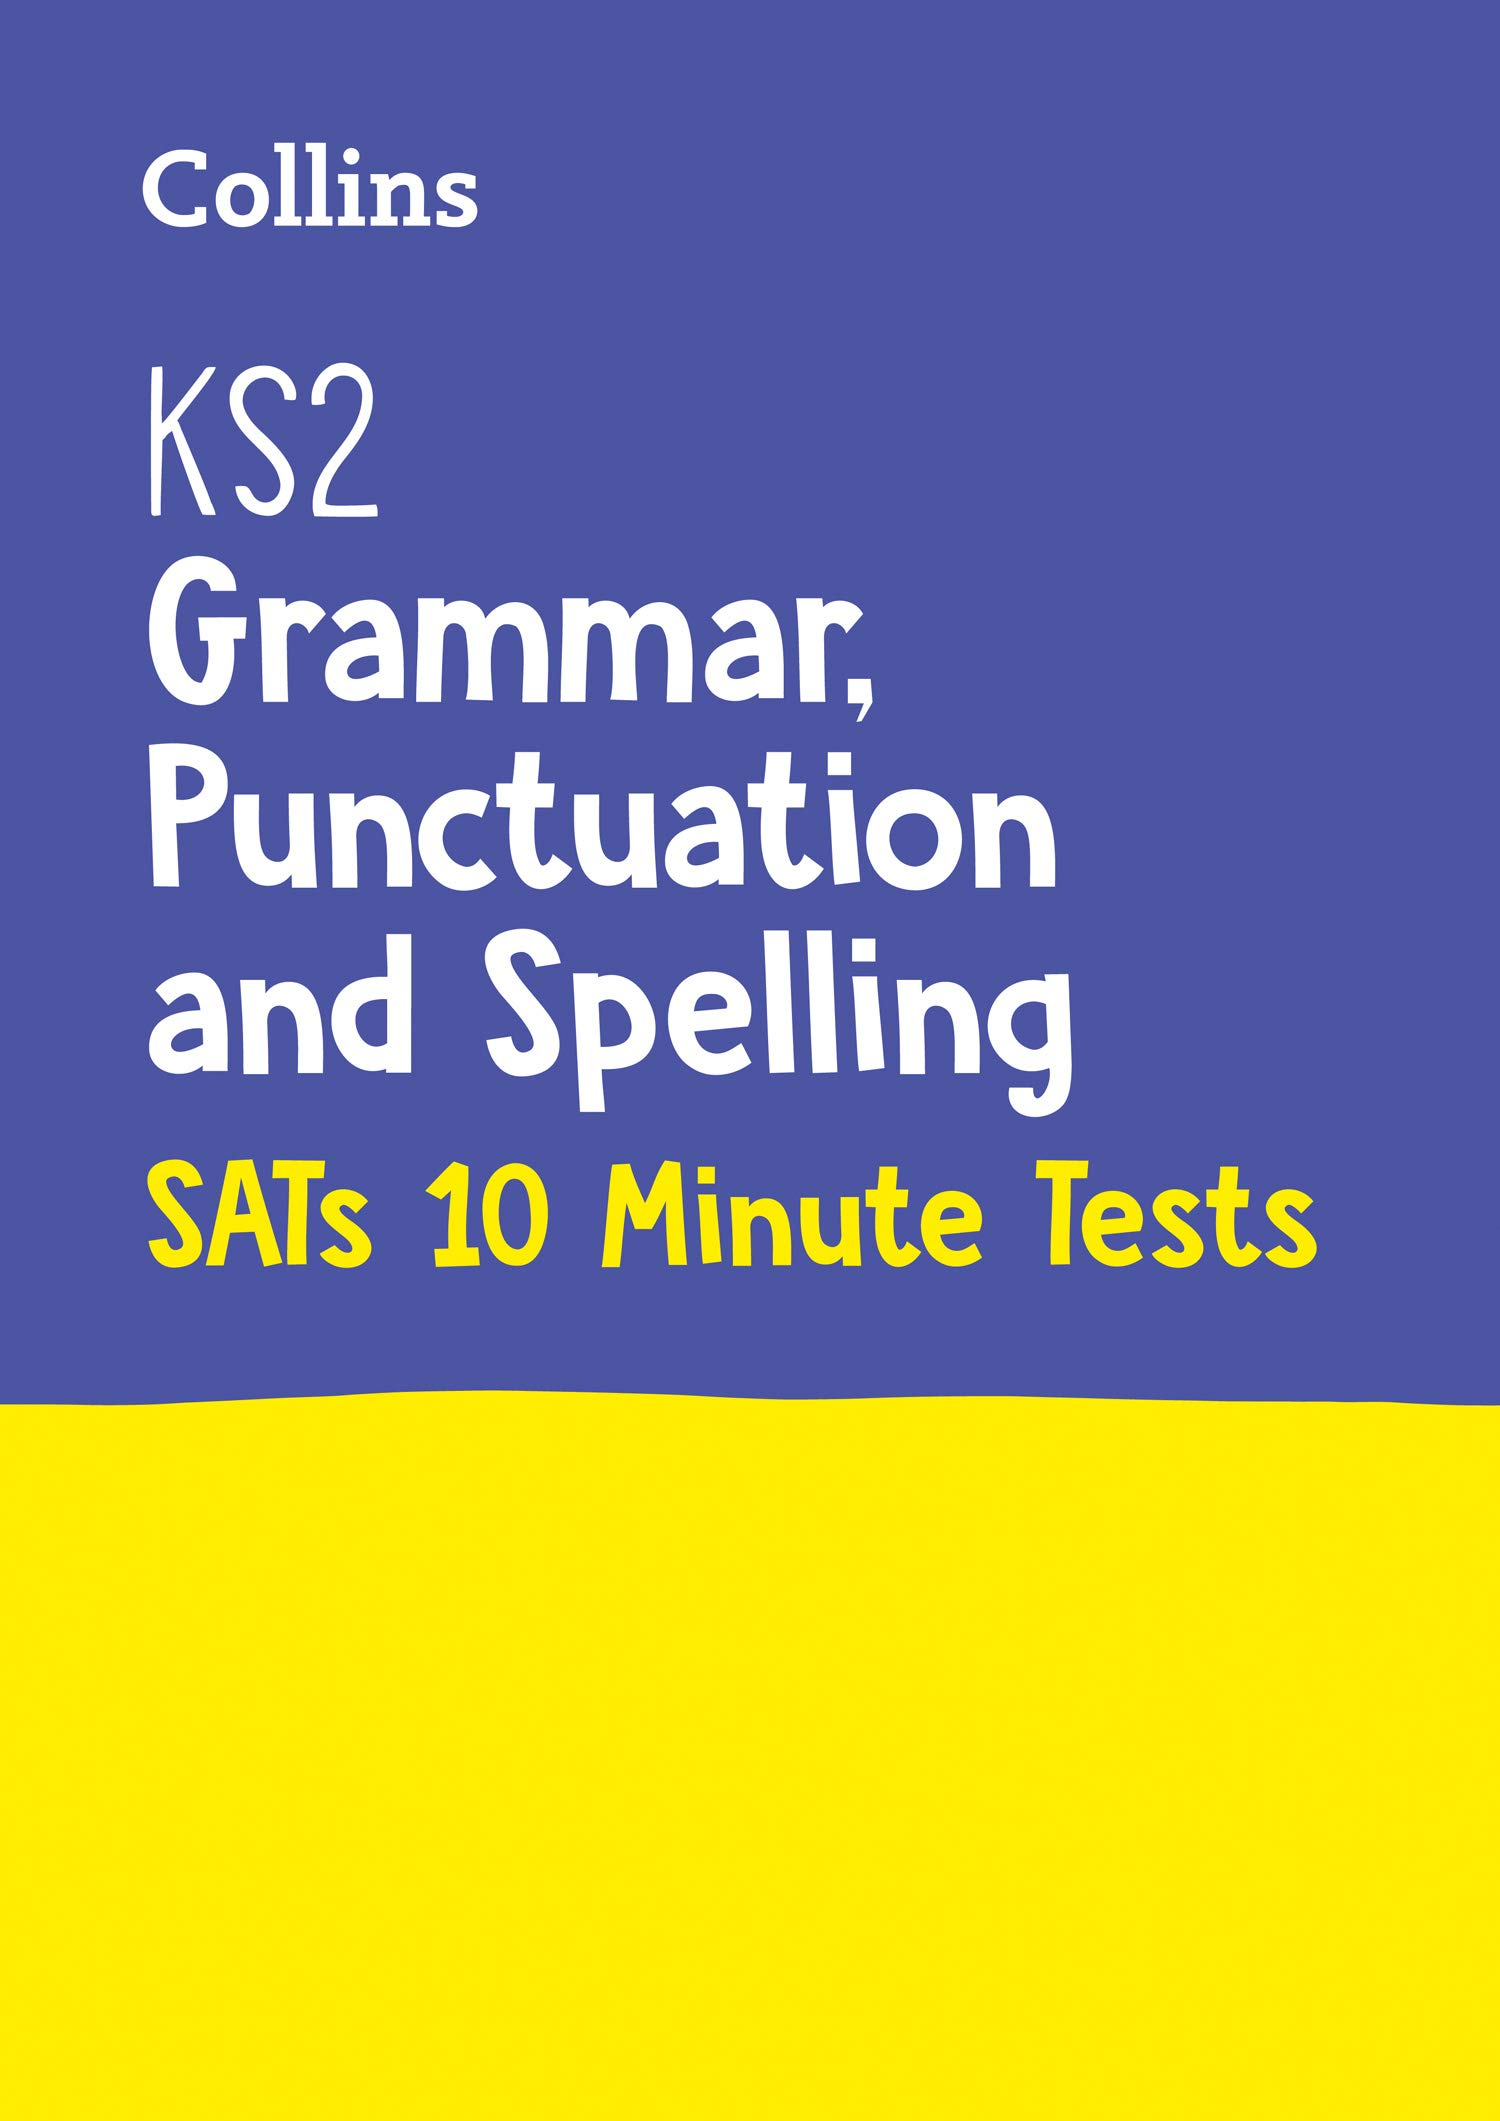 Letts — KS2 ENGLISH SATS GRAMMAR, PUNCTUATION AND SPELLING 10-MINUTE TESTS: KS2 ENGLISH GRAMMAR, PUNCTUATION AND SPELLING ...